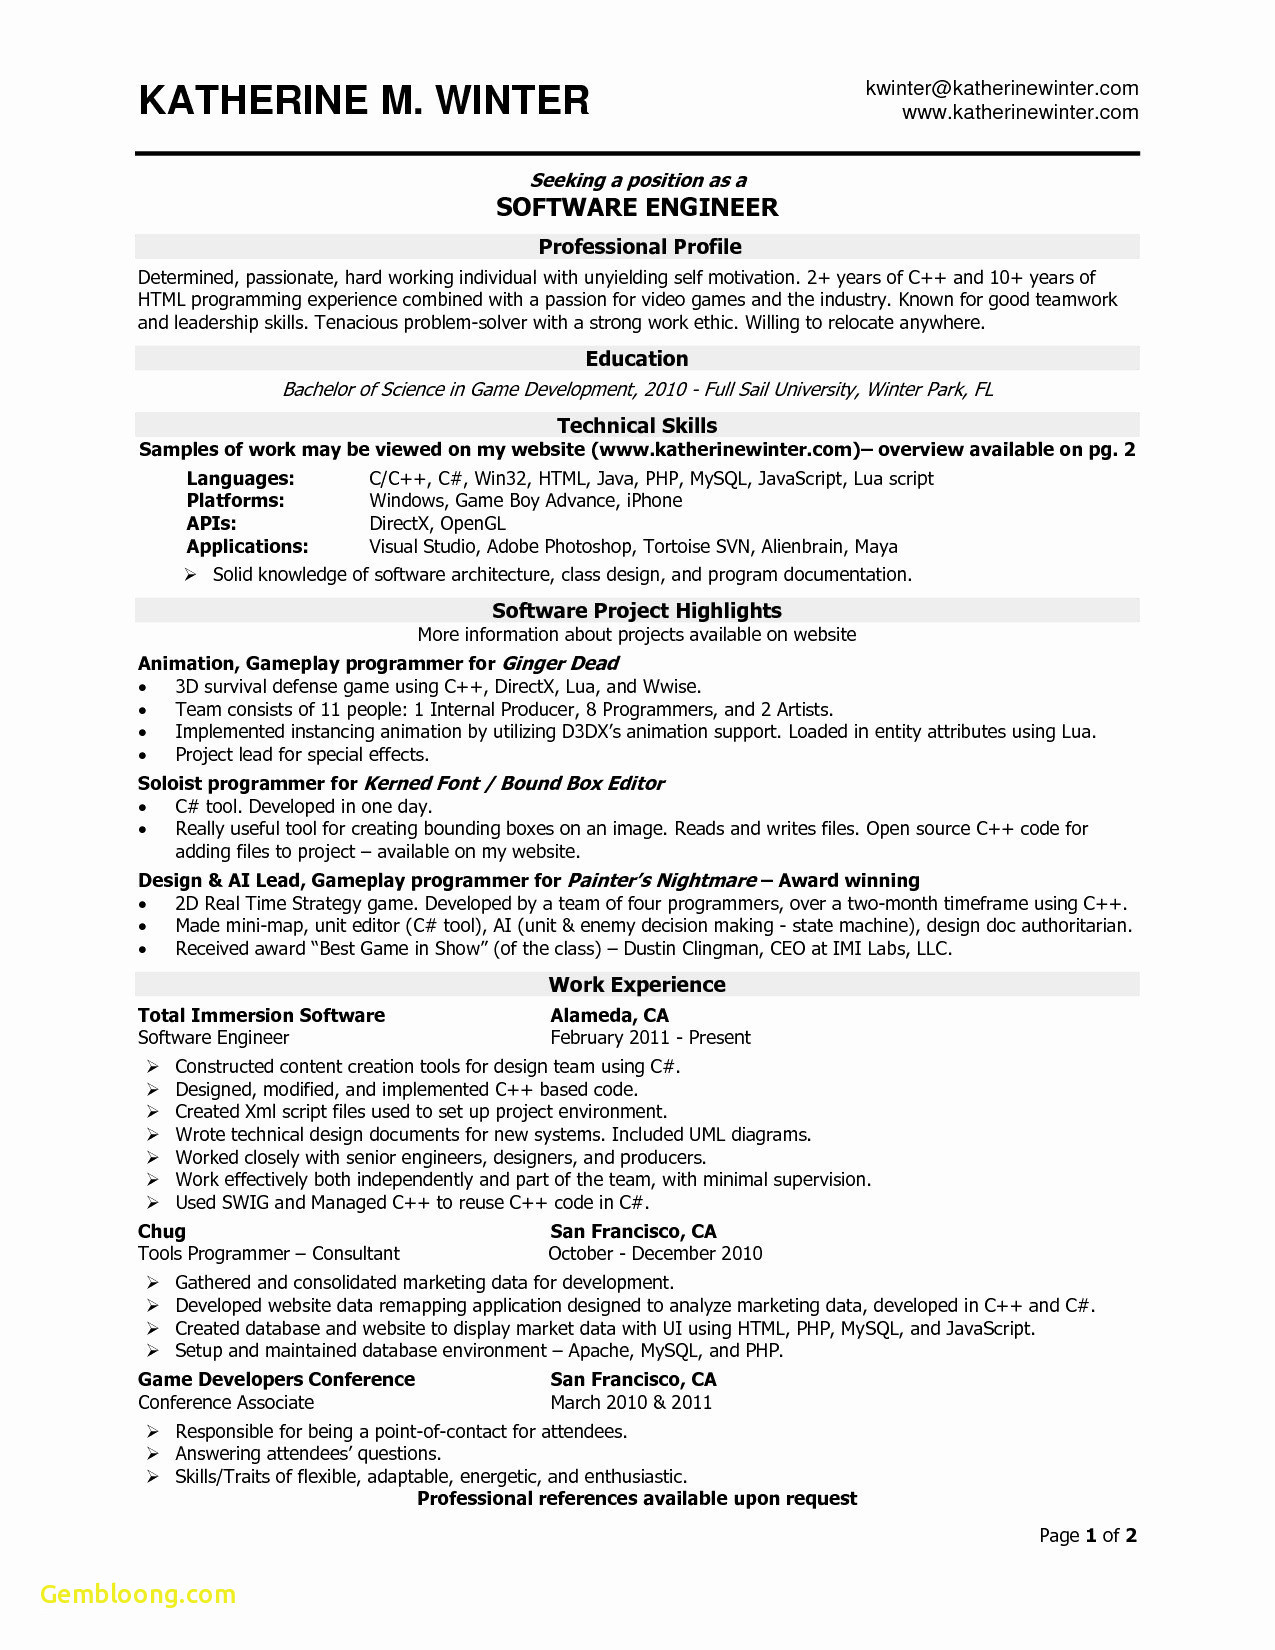 computer engineer resume template example-Pr Resume New Fresh Pr Resume Template Elegant Dictionary Template 0d Archives Download Awesome Pr Resume from software engineer resume templates 1-f